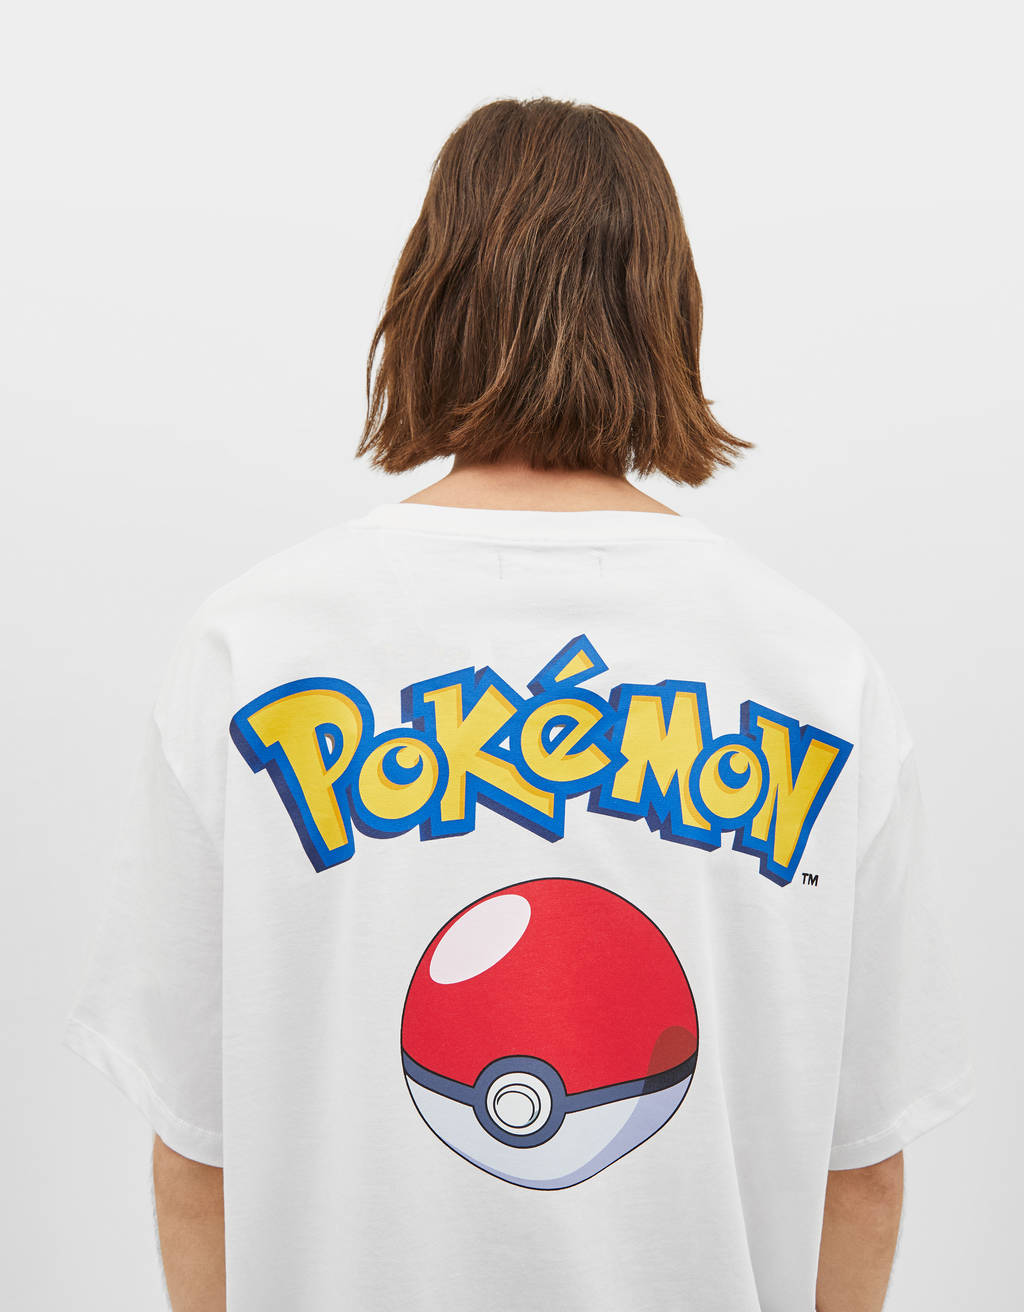 Camiseta estampado Pokémon